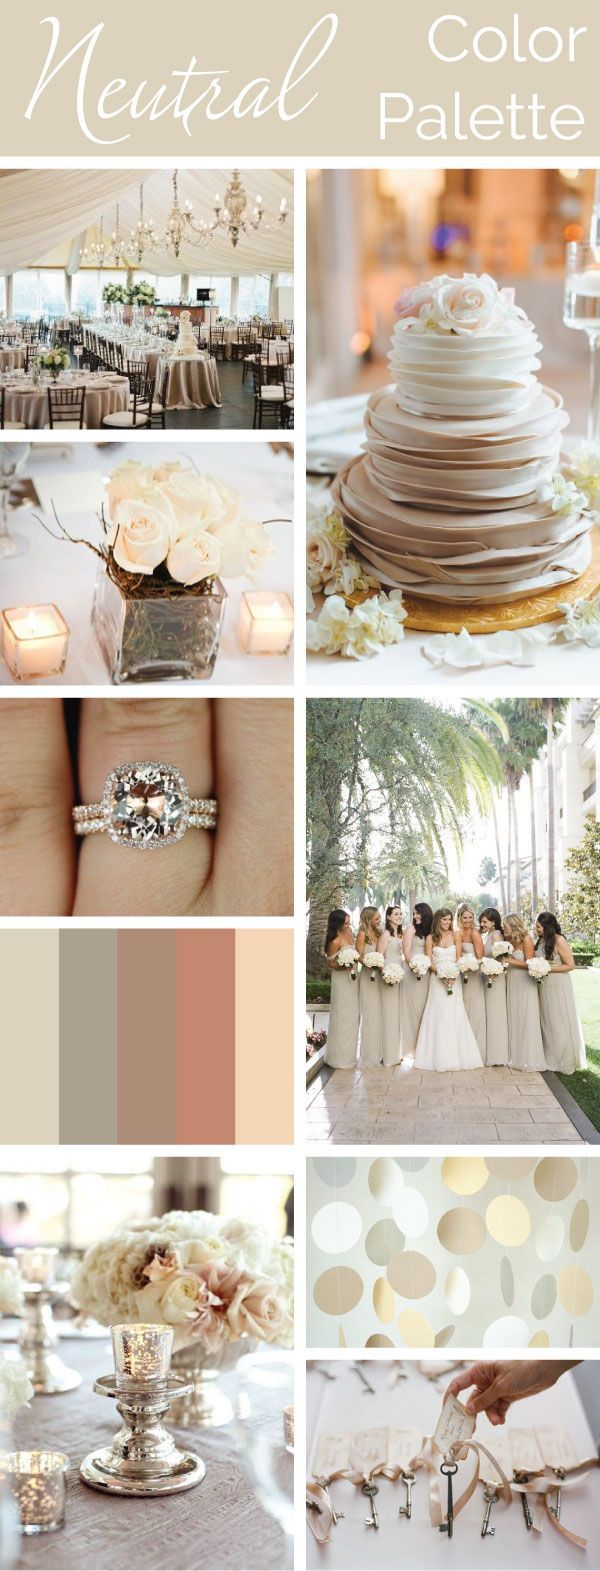 Neutral Color Palette: Simple, Elegant, Versatile. | Linentablecloth